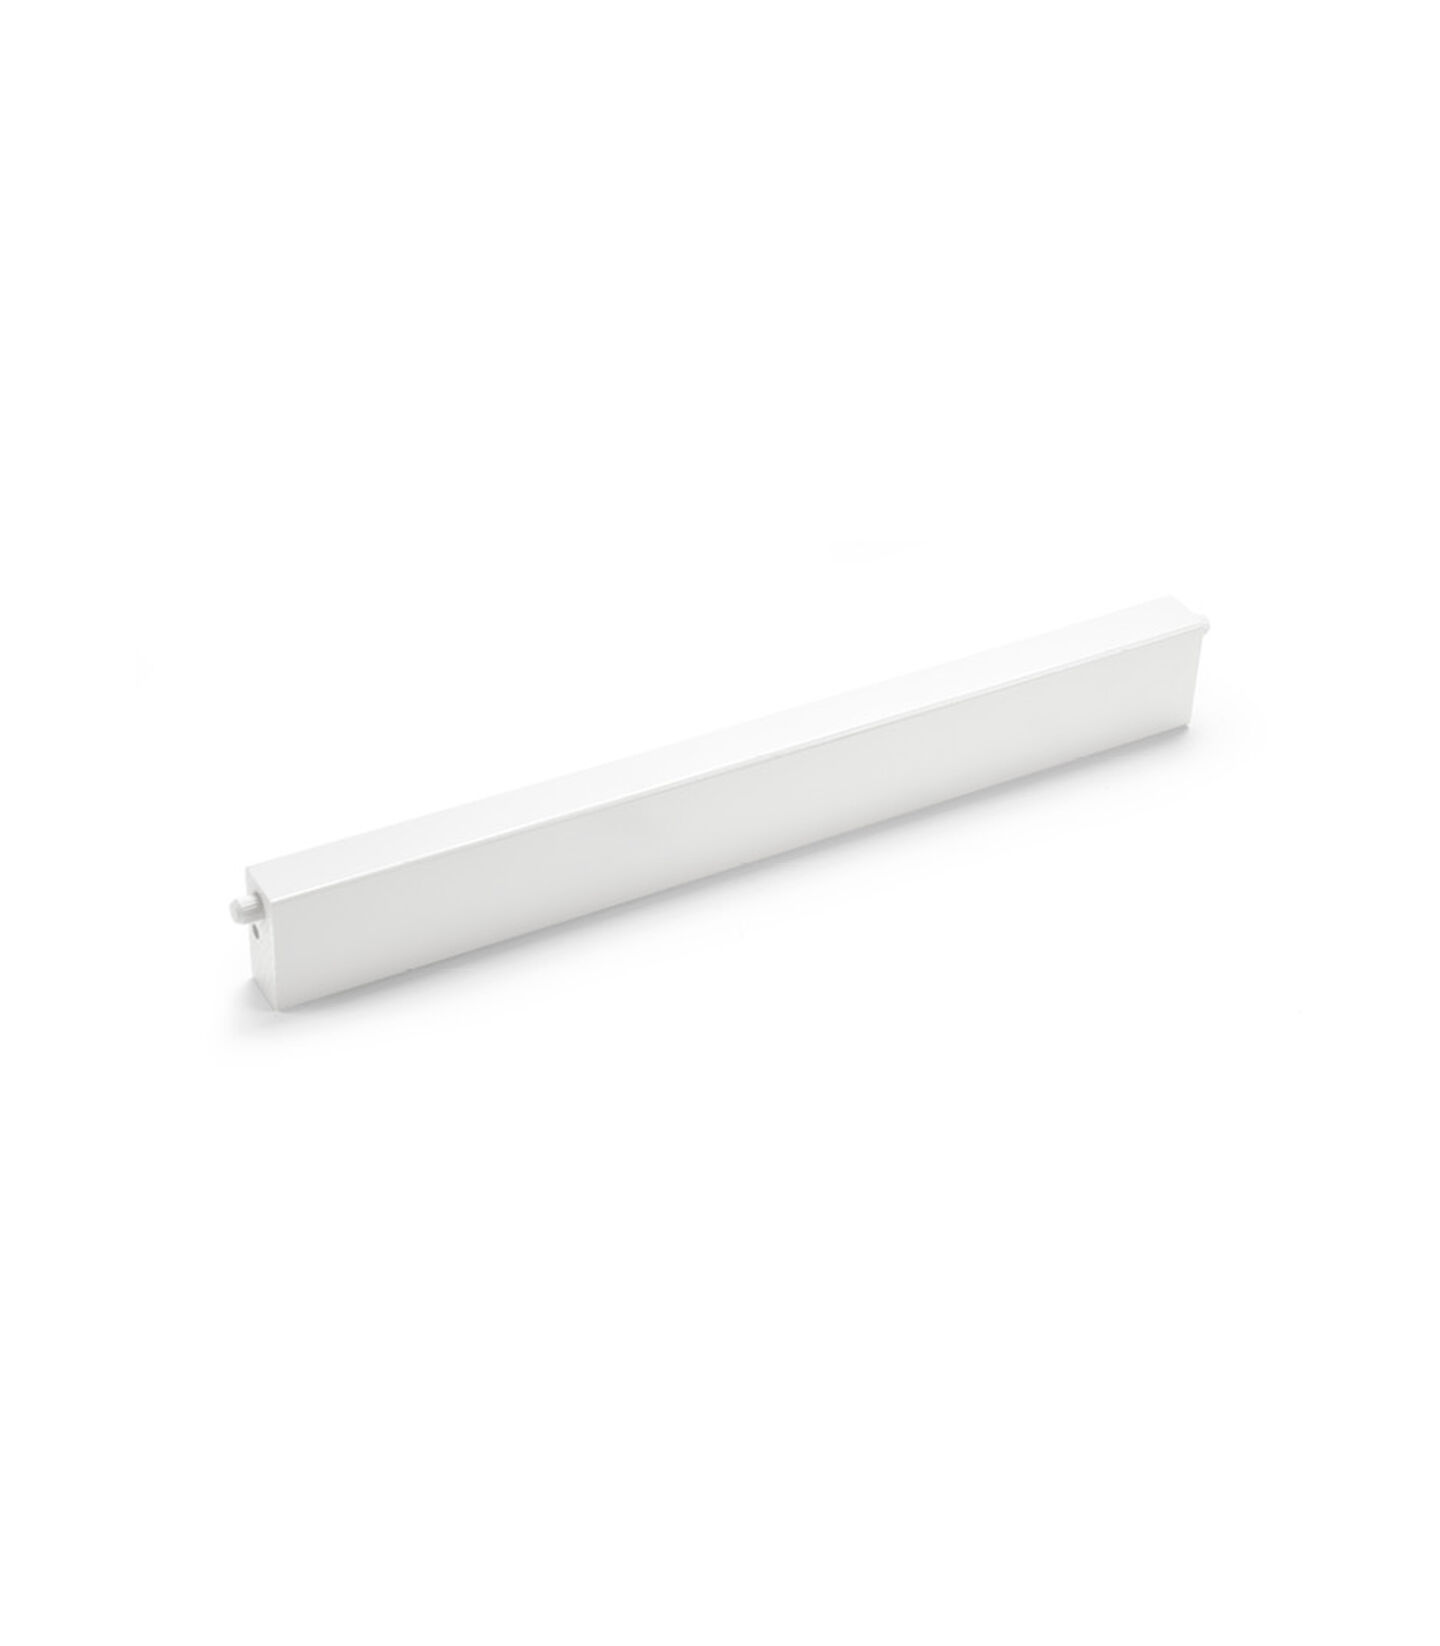 108607 Tripp Trapp Floorbrace White (Spare part). view 2